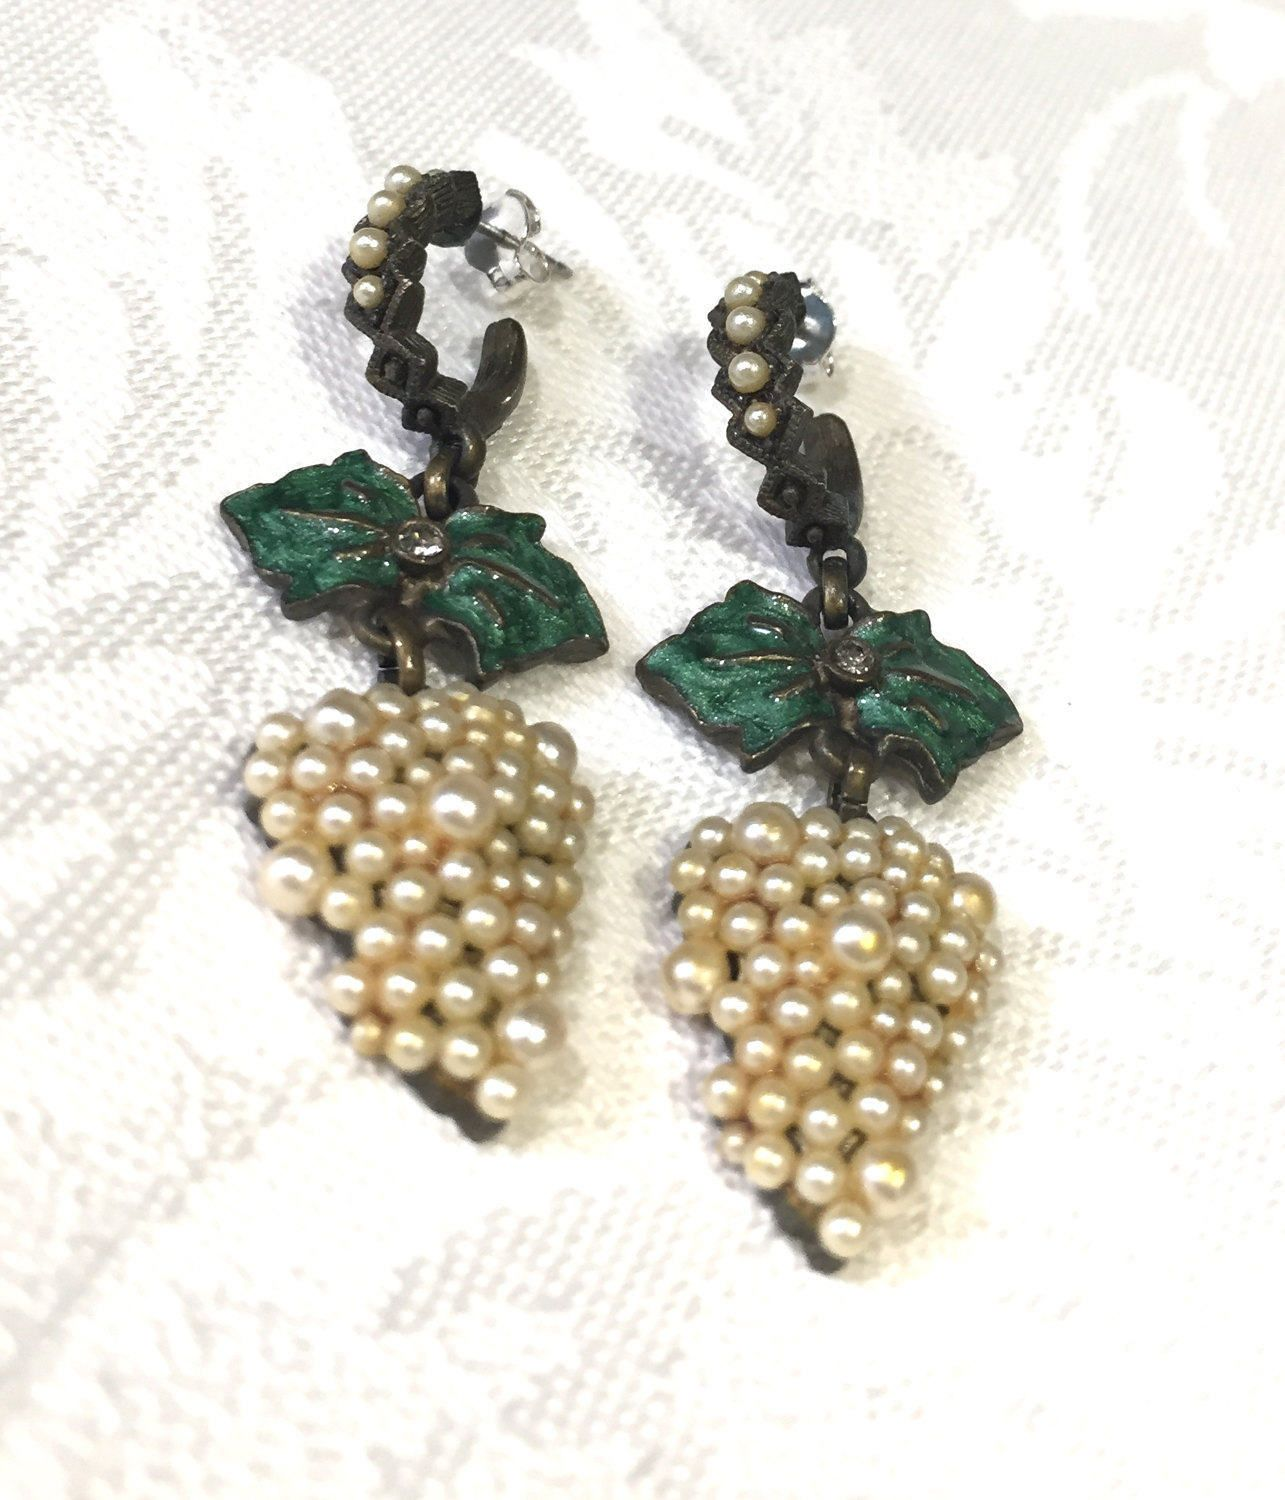 Roxanne Assouline Earrings, Vintage Faux Pearl Earrings, Dangling Enamel  And Rhinestone Earrings, Hallmarked